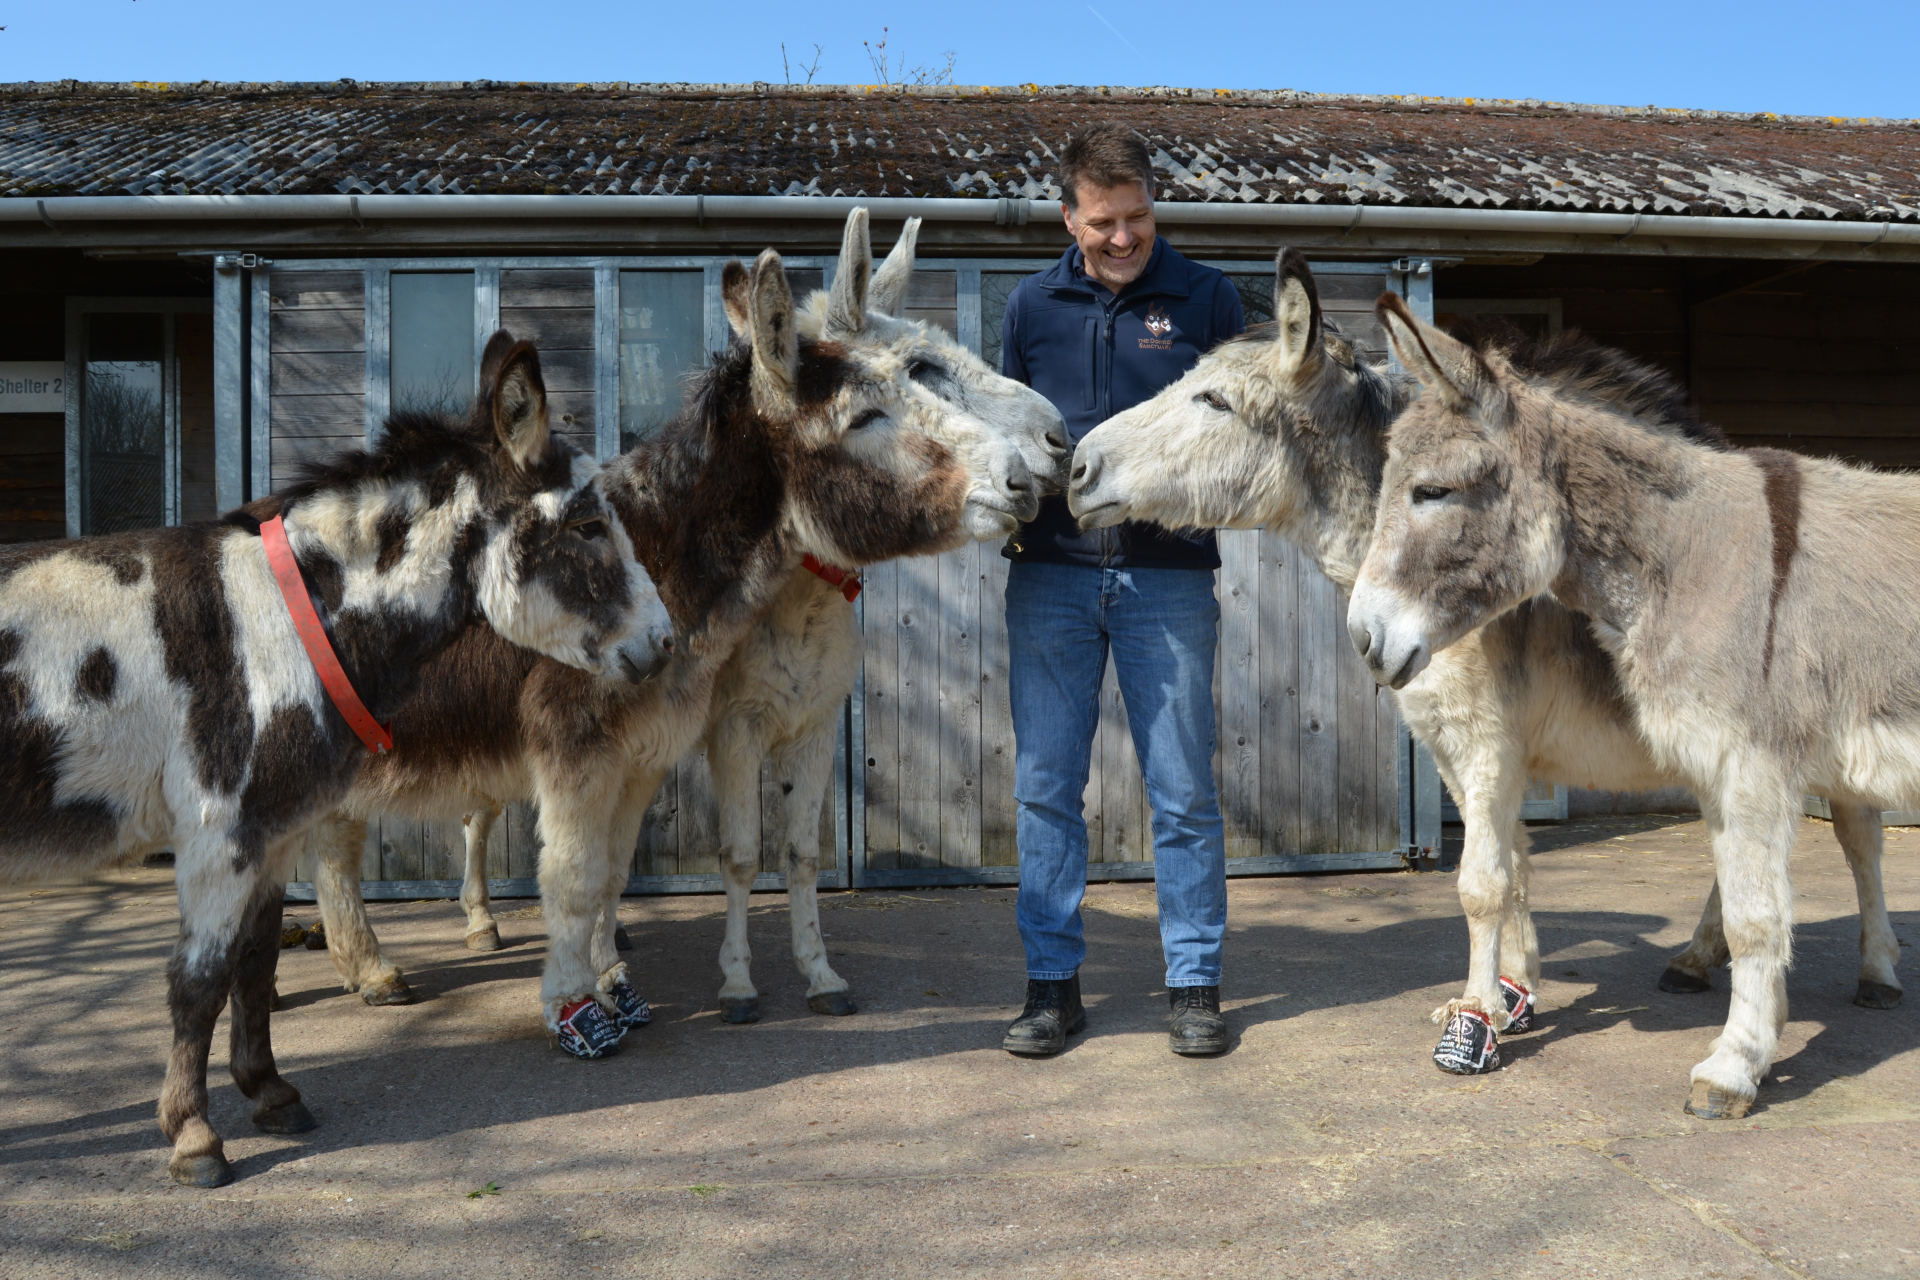 Ben Hart with Blackpool donkeys in Sidmouth